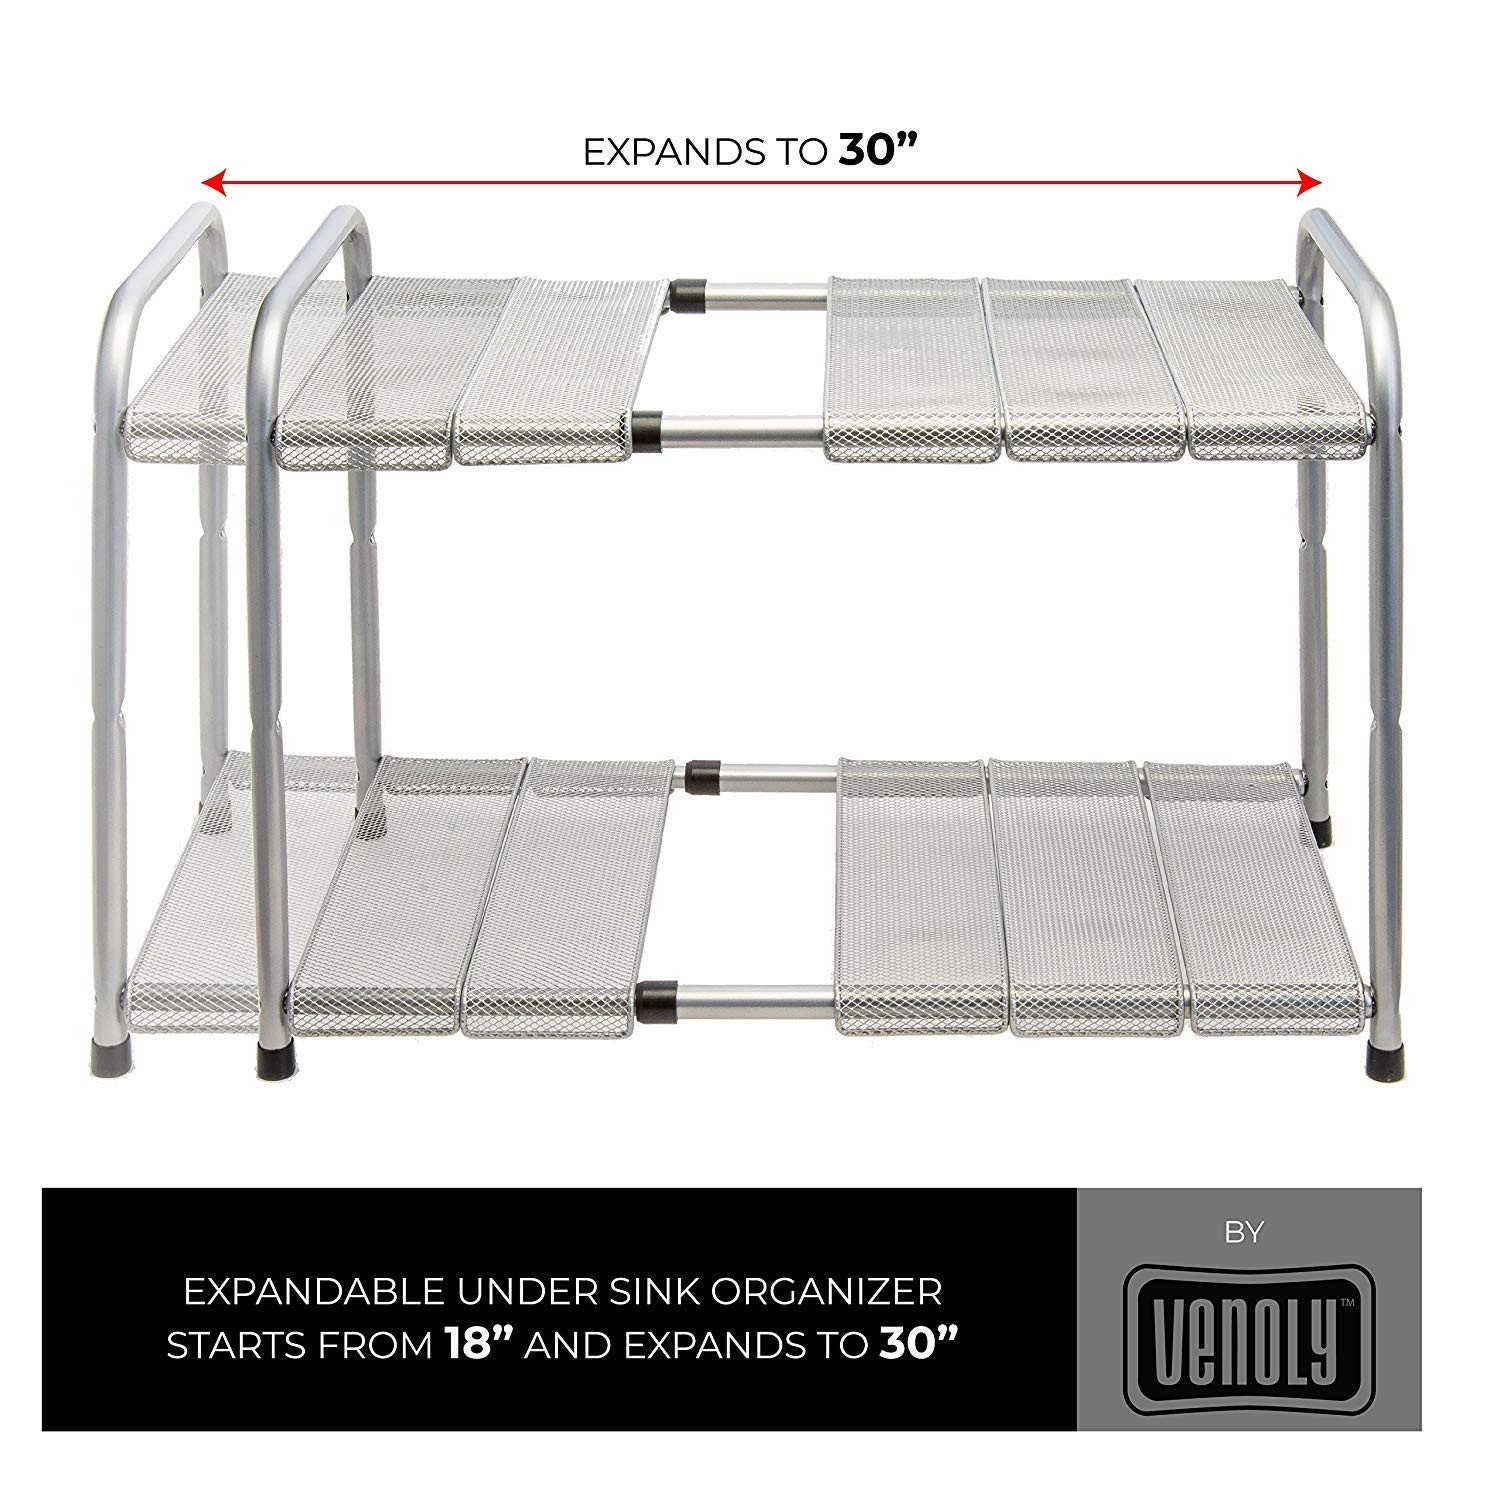 Venoly Home - Under Sink 2 Tier Expandable Shelf Organizer Rack, Silver - Expands from 18 Inches to 30 Inches by Venoly